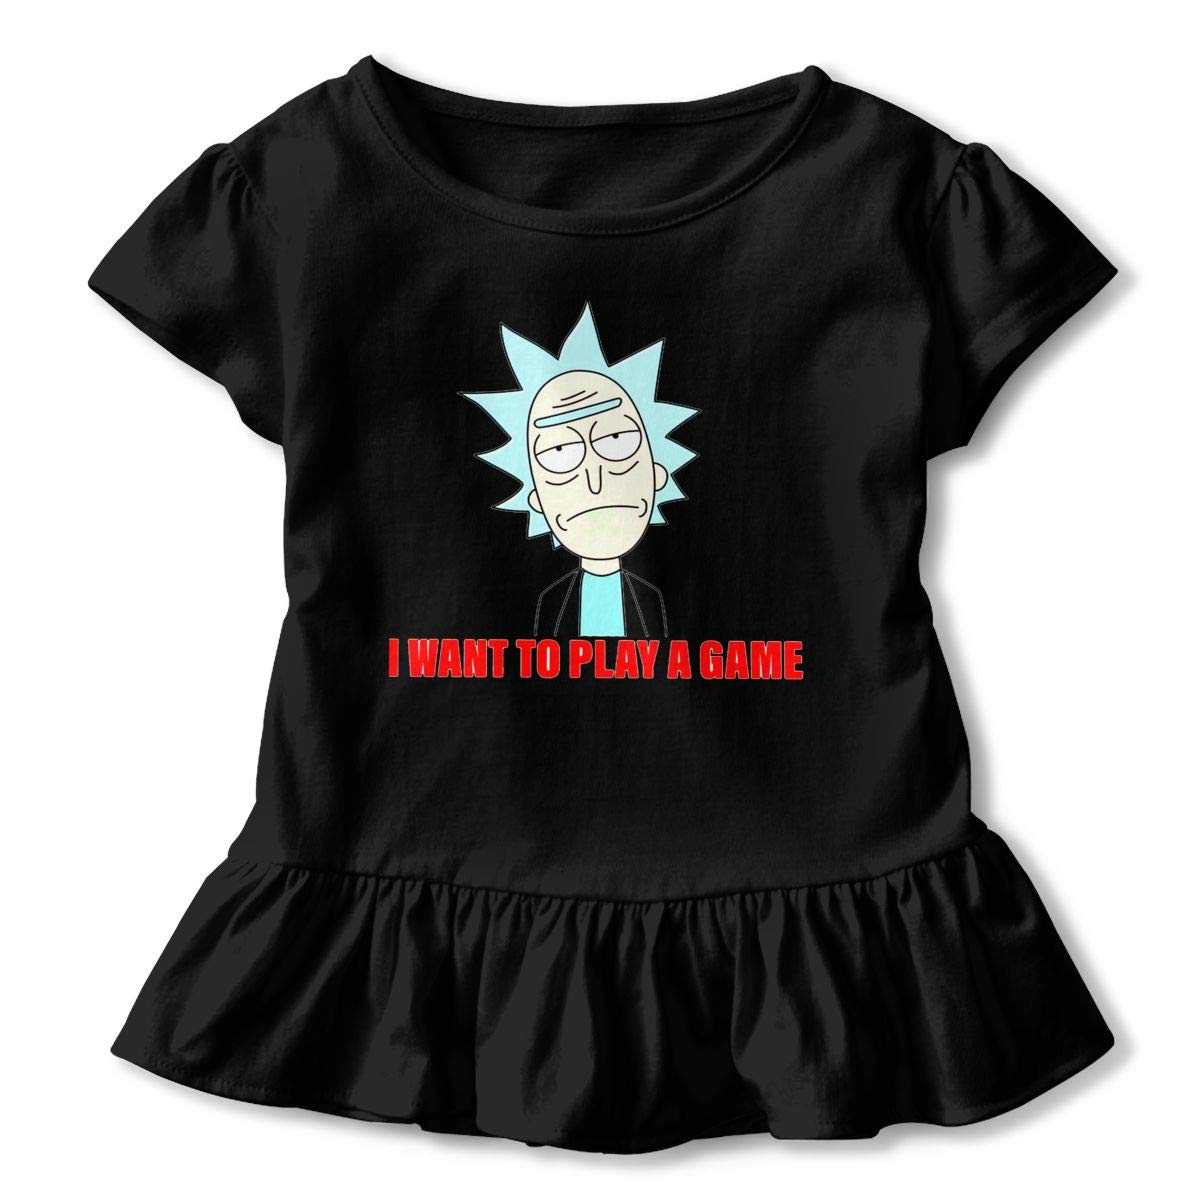 Rick-and-Morty-I-Want-to-Play-a-Game Toddler Little Girl Floral Ruffled Sleeve T-Shirt Tops